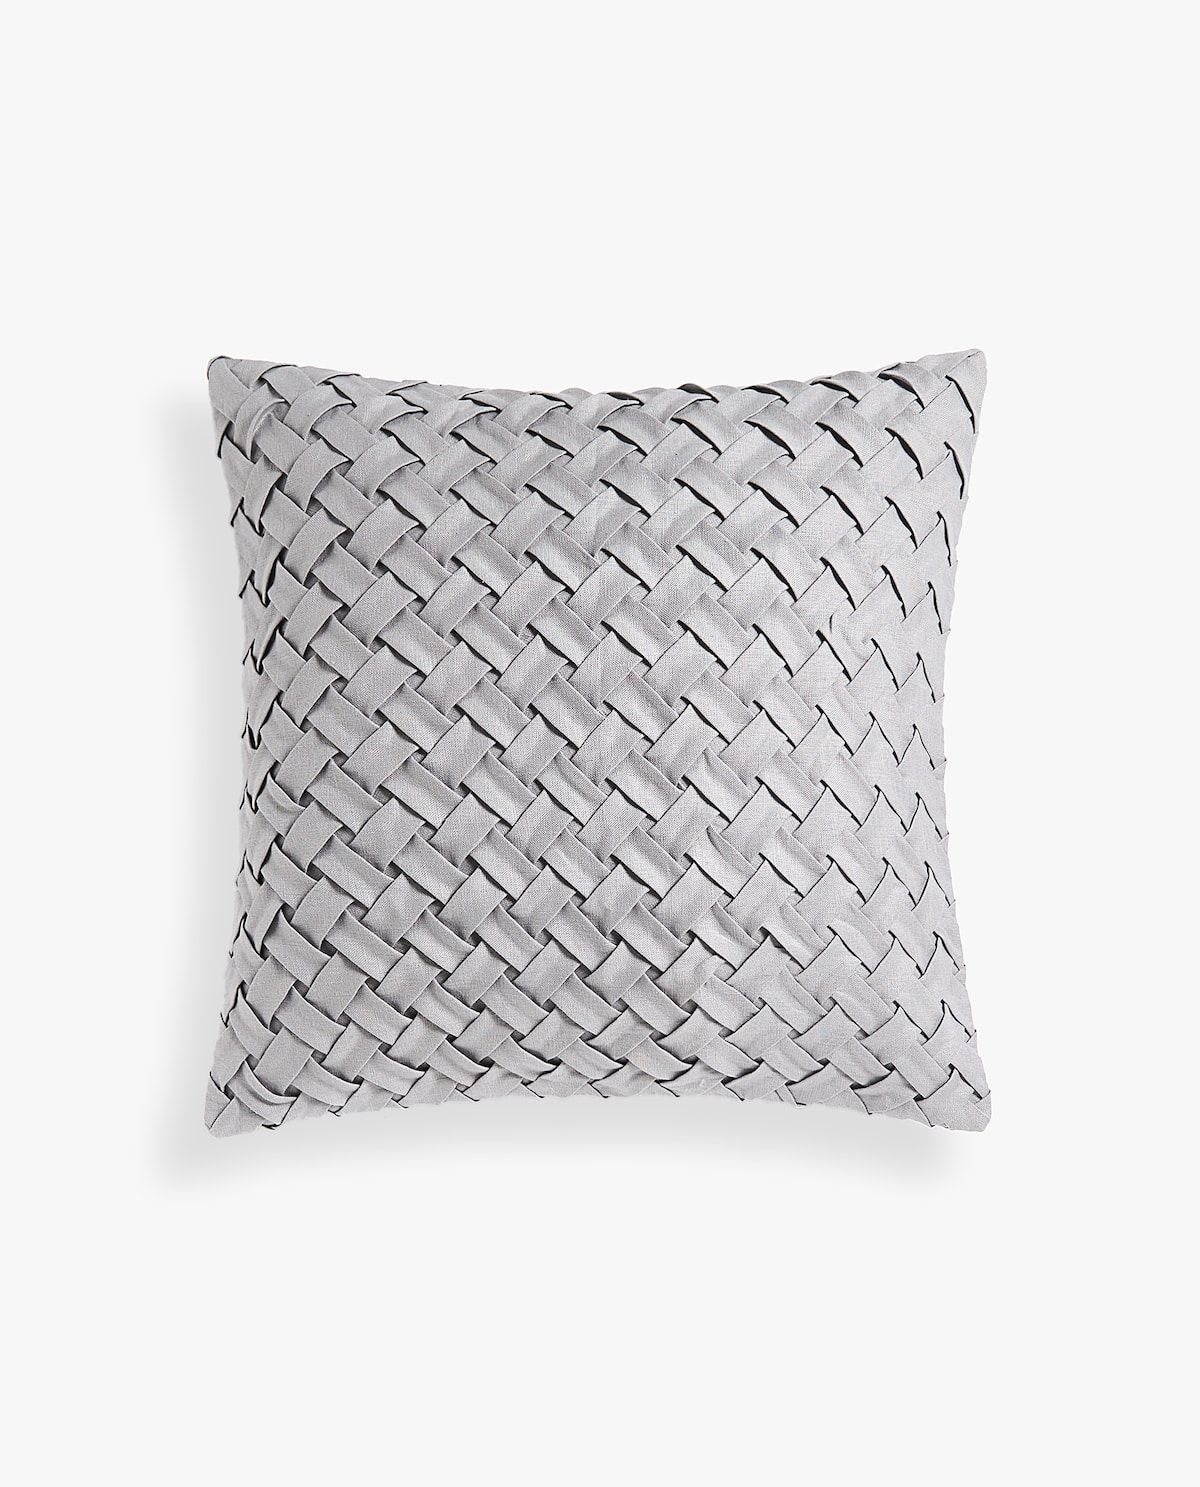 Bungalow Cushion In Grey Throw Pillows Cushions Pillows